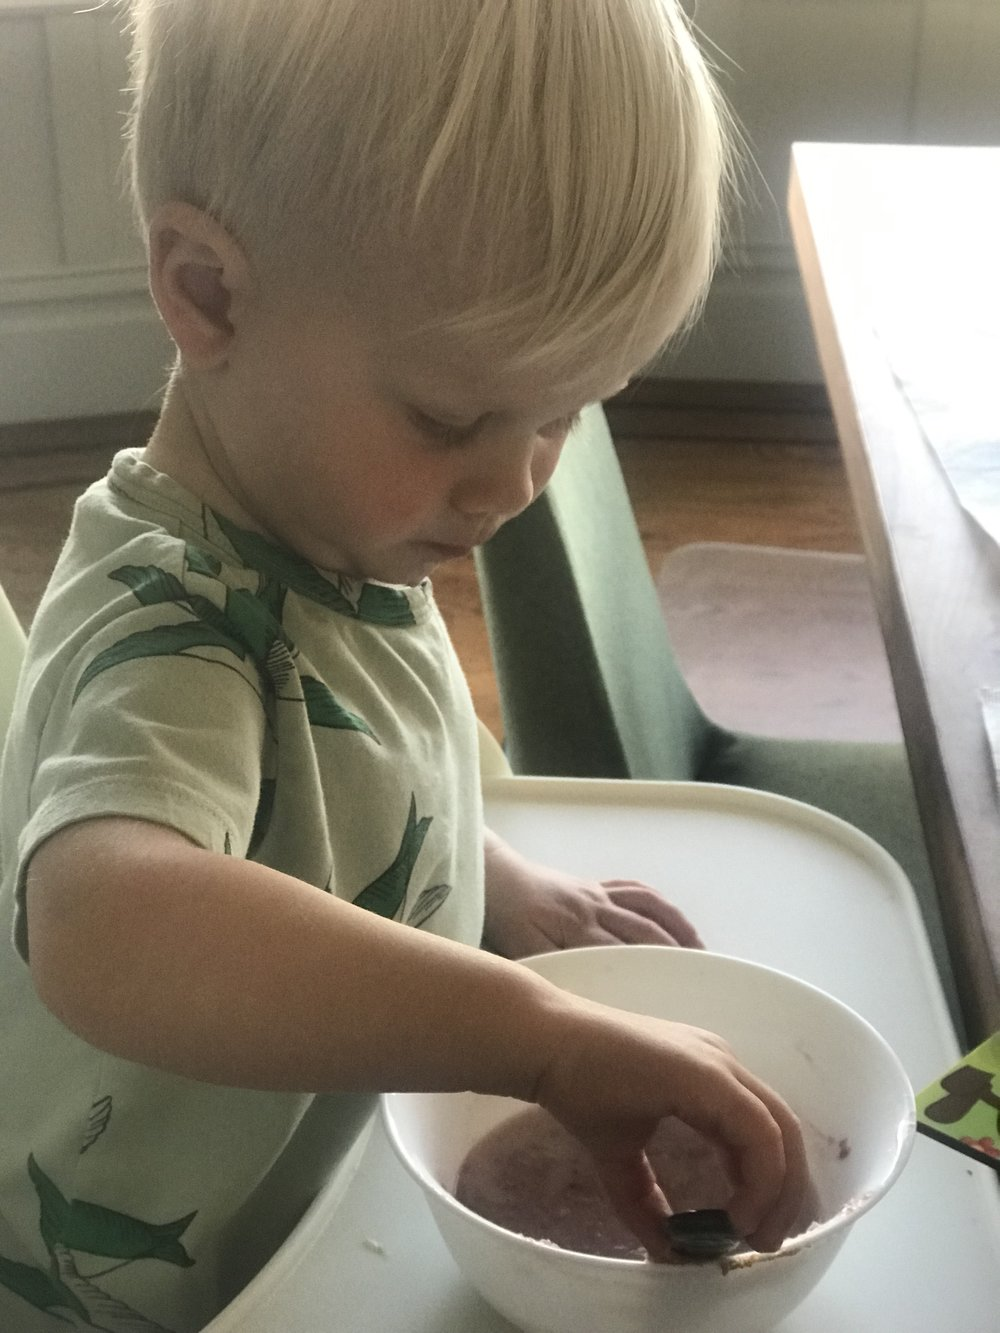 Linc enjoying one of his many pink oatmeal breakfasts with almond milk and peanut butter as preferred topping